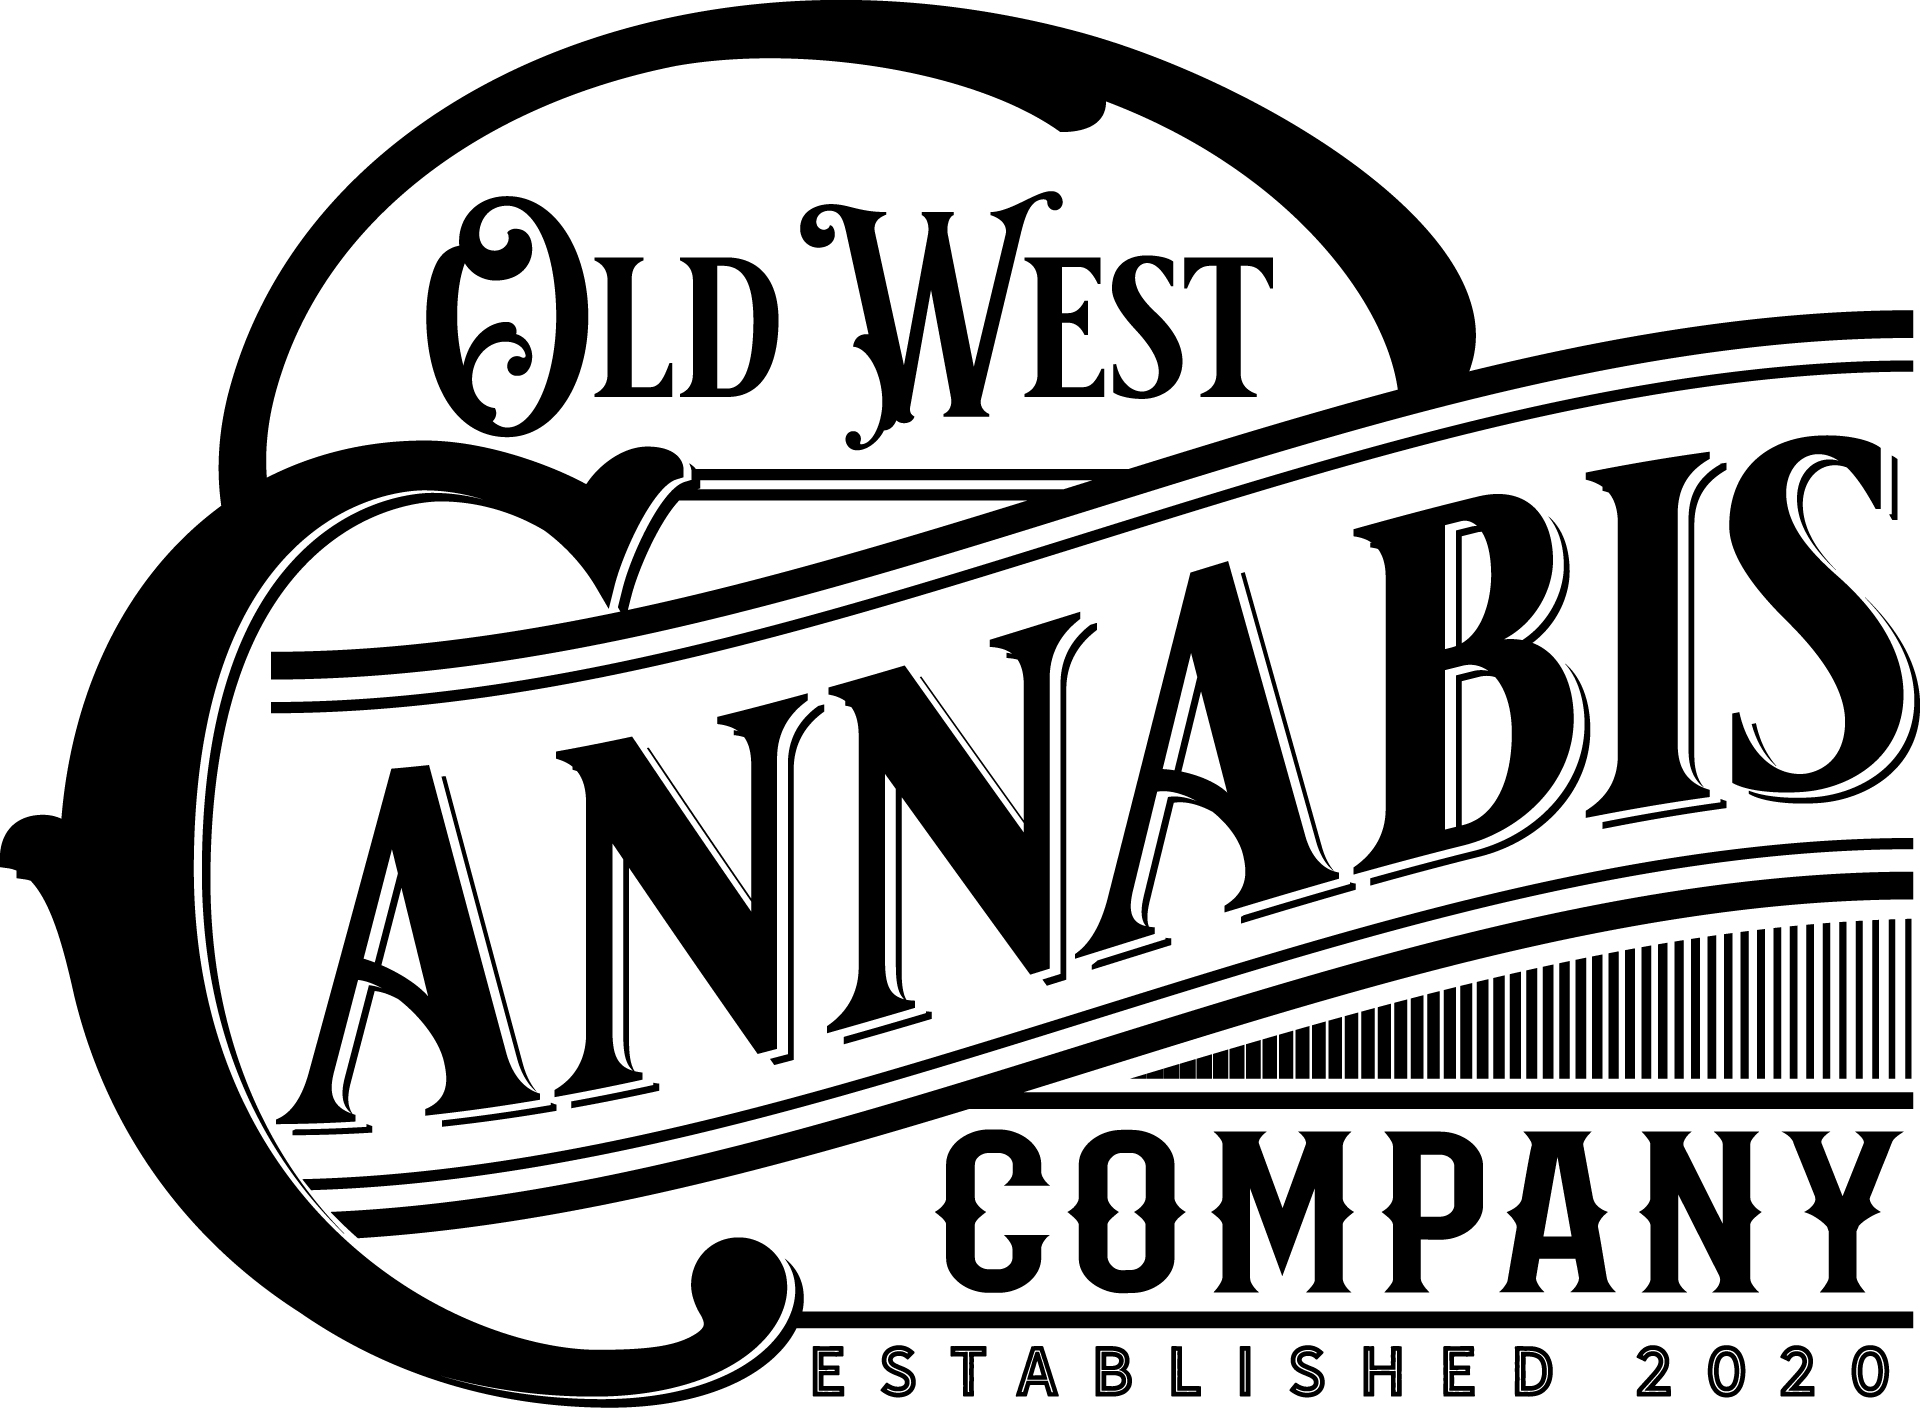 Old West Cannabis